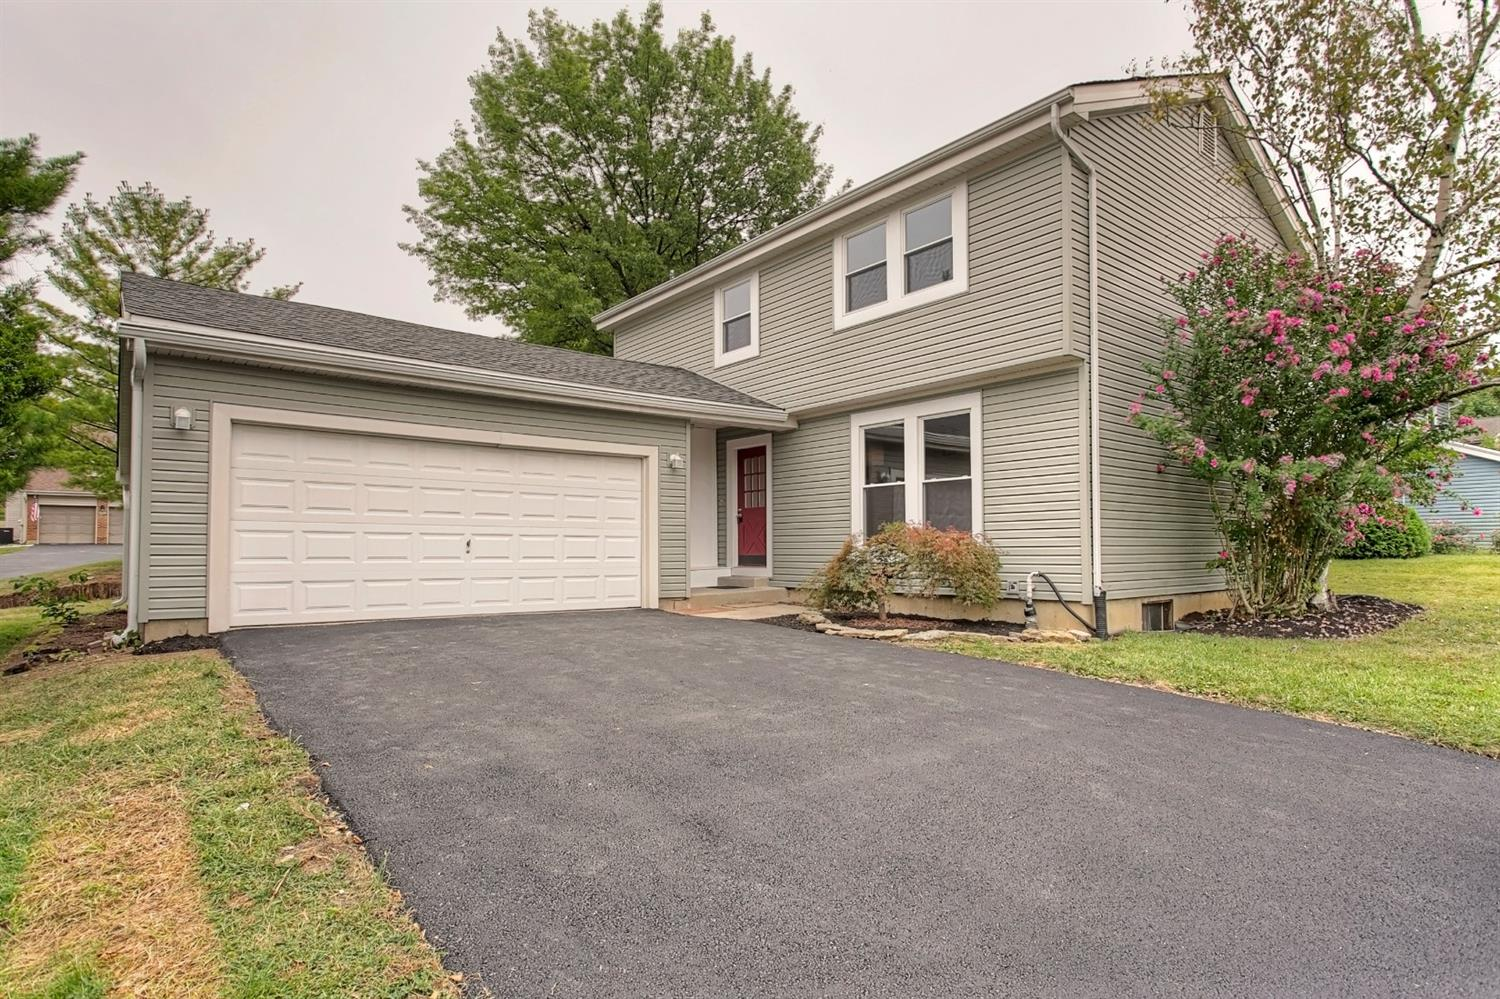 Highly sought after 3 bedroom 3 bath with a full basement in West Chester. Completely refurbished 2 story on a corner lot. New roof, driveway, kitchen, baths, the works.